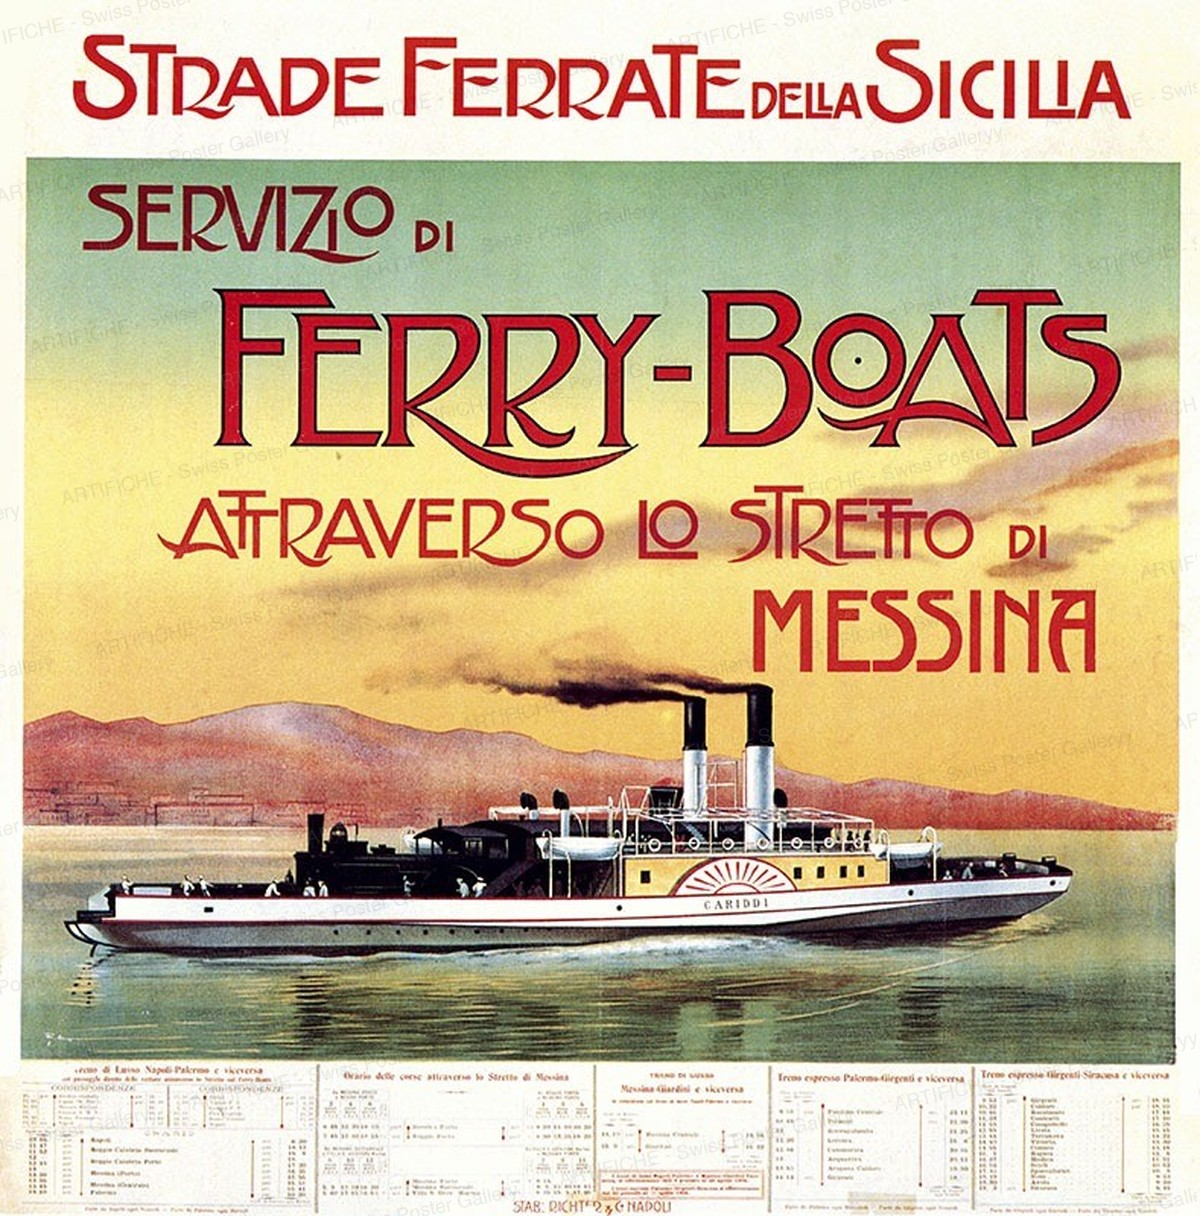 Ferry-Boats Messina, Artist unknown